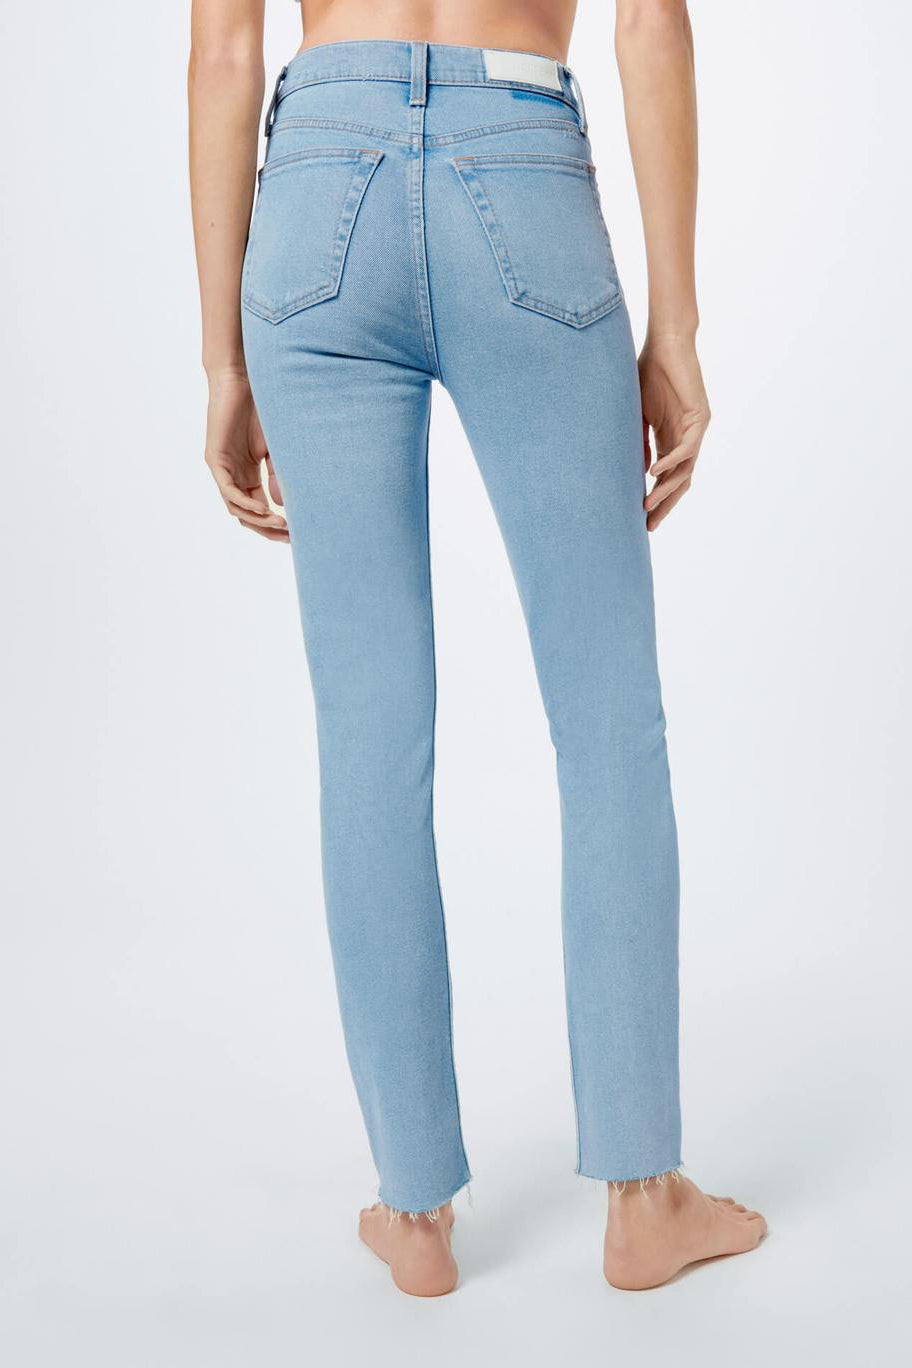 RE/DONE Comfort Stretch High Rise Ankle Crop Jean in Light 2